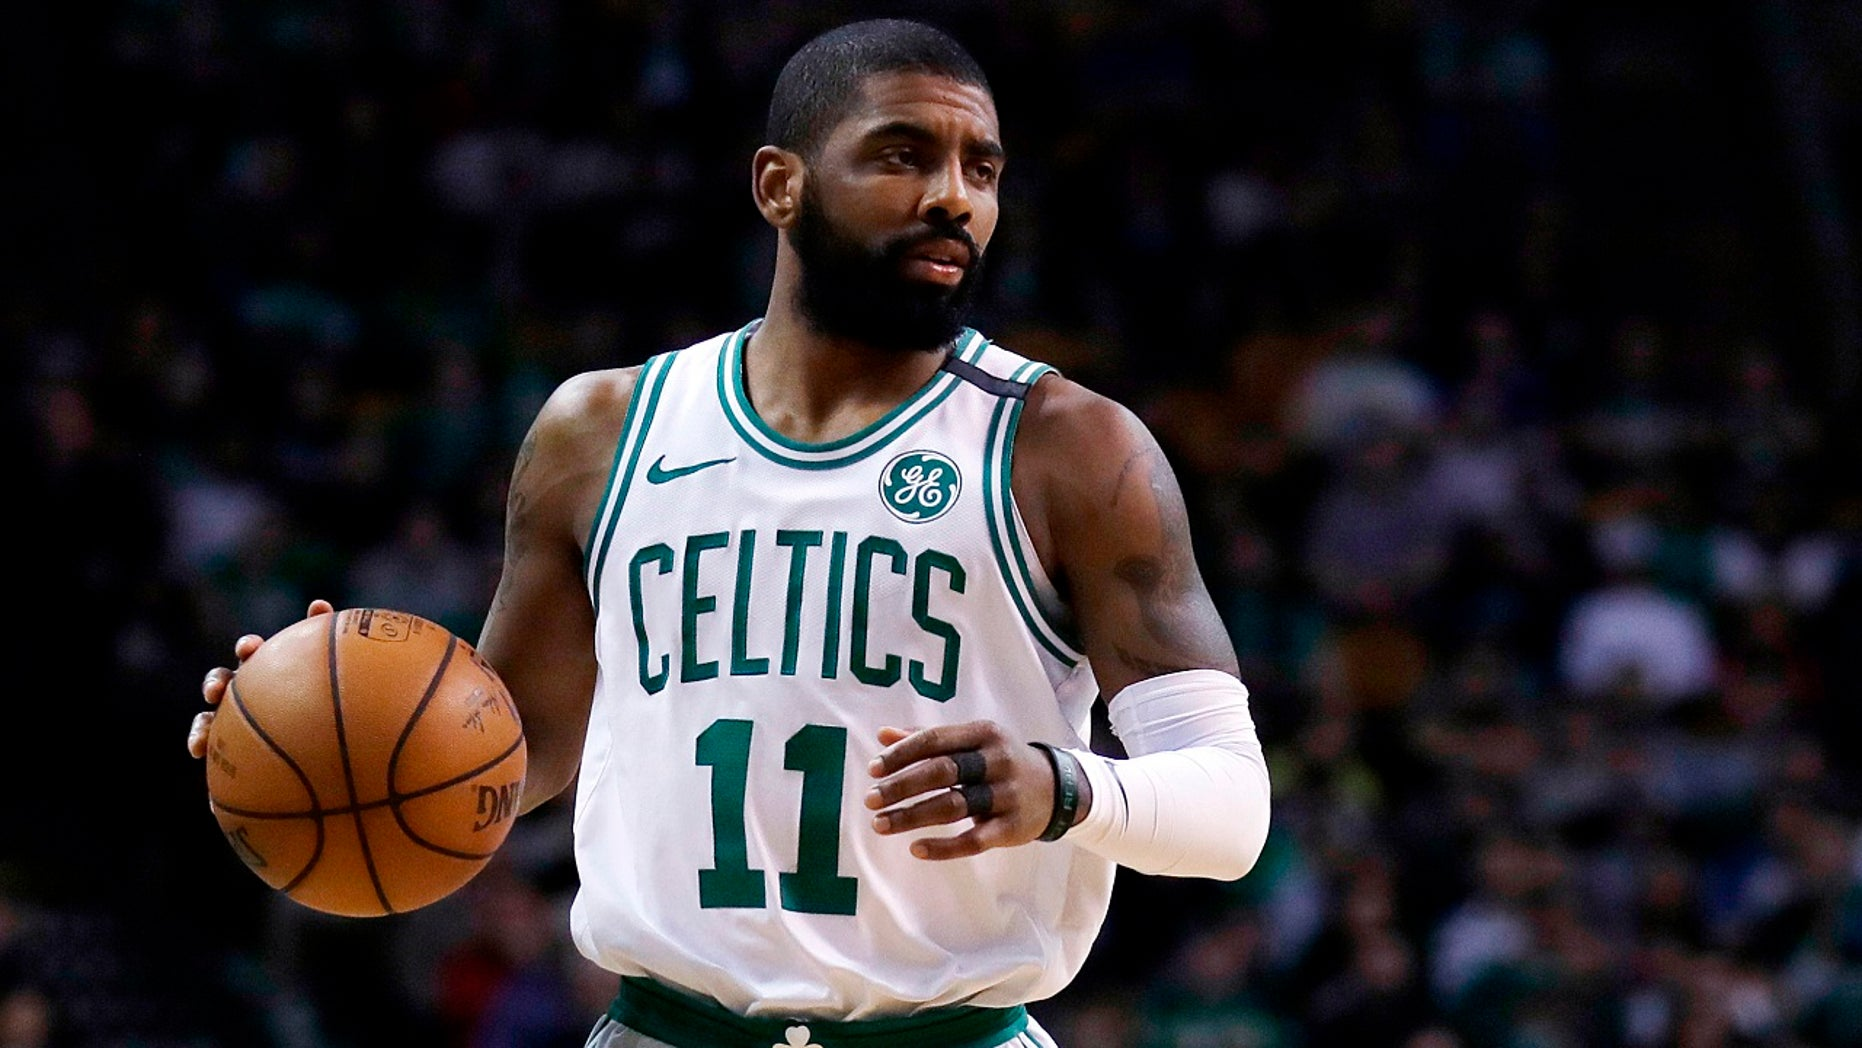 Boston Celtics guard Kyrie Irving (11) moves down court during the first quarter of an NBA basketball game in Boston, Feb 28, 2018.